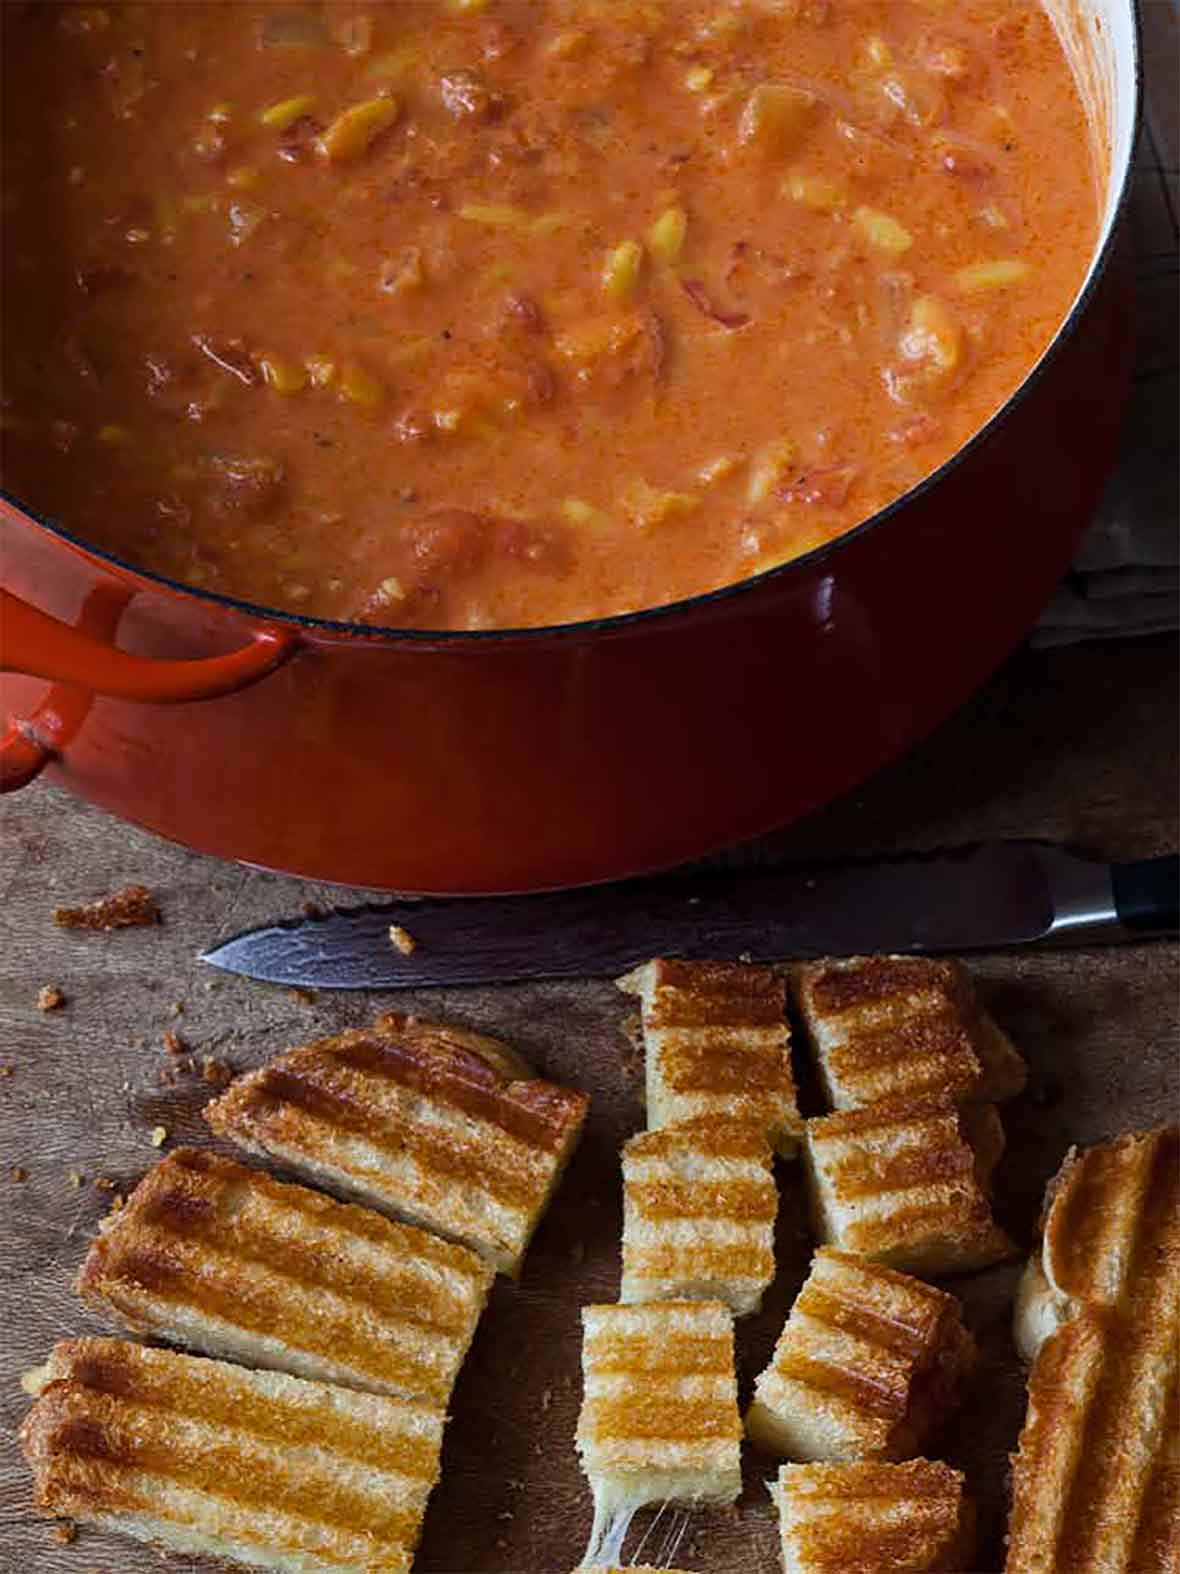 A large pot of easy tomato soup with a grilled cheese sandwich being cut into croutons beside it.